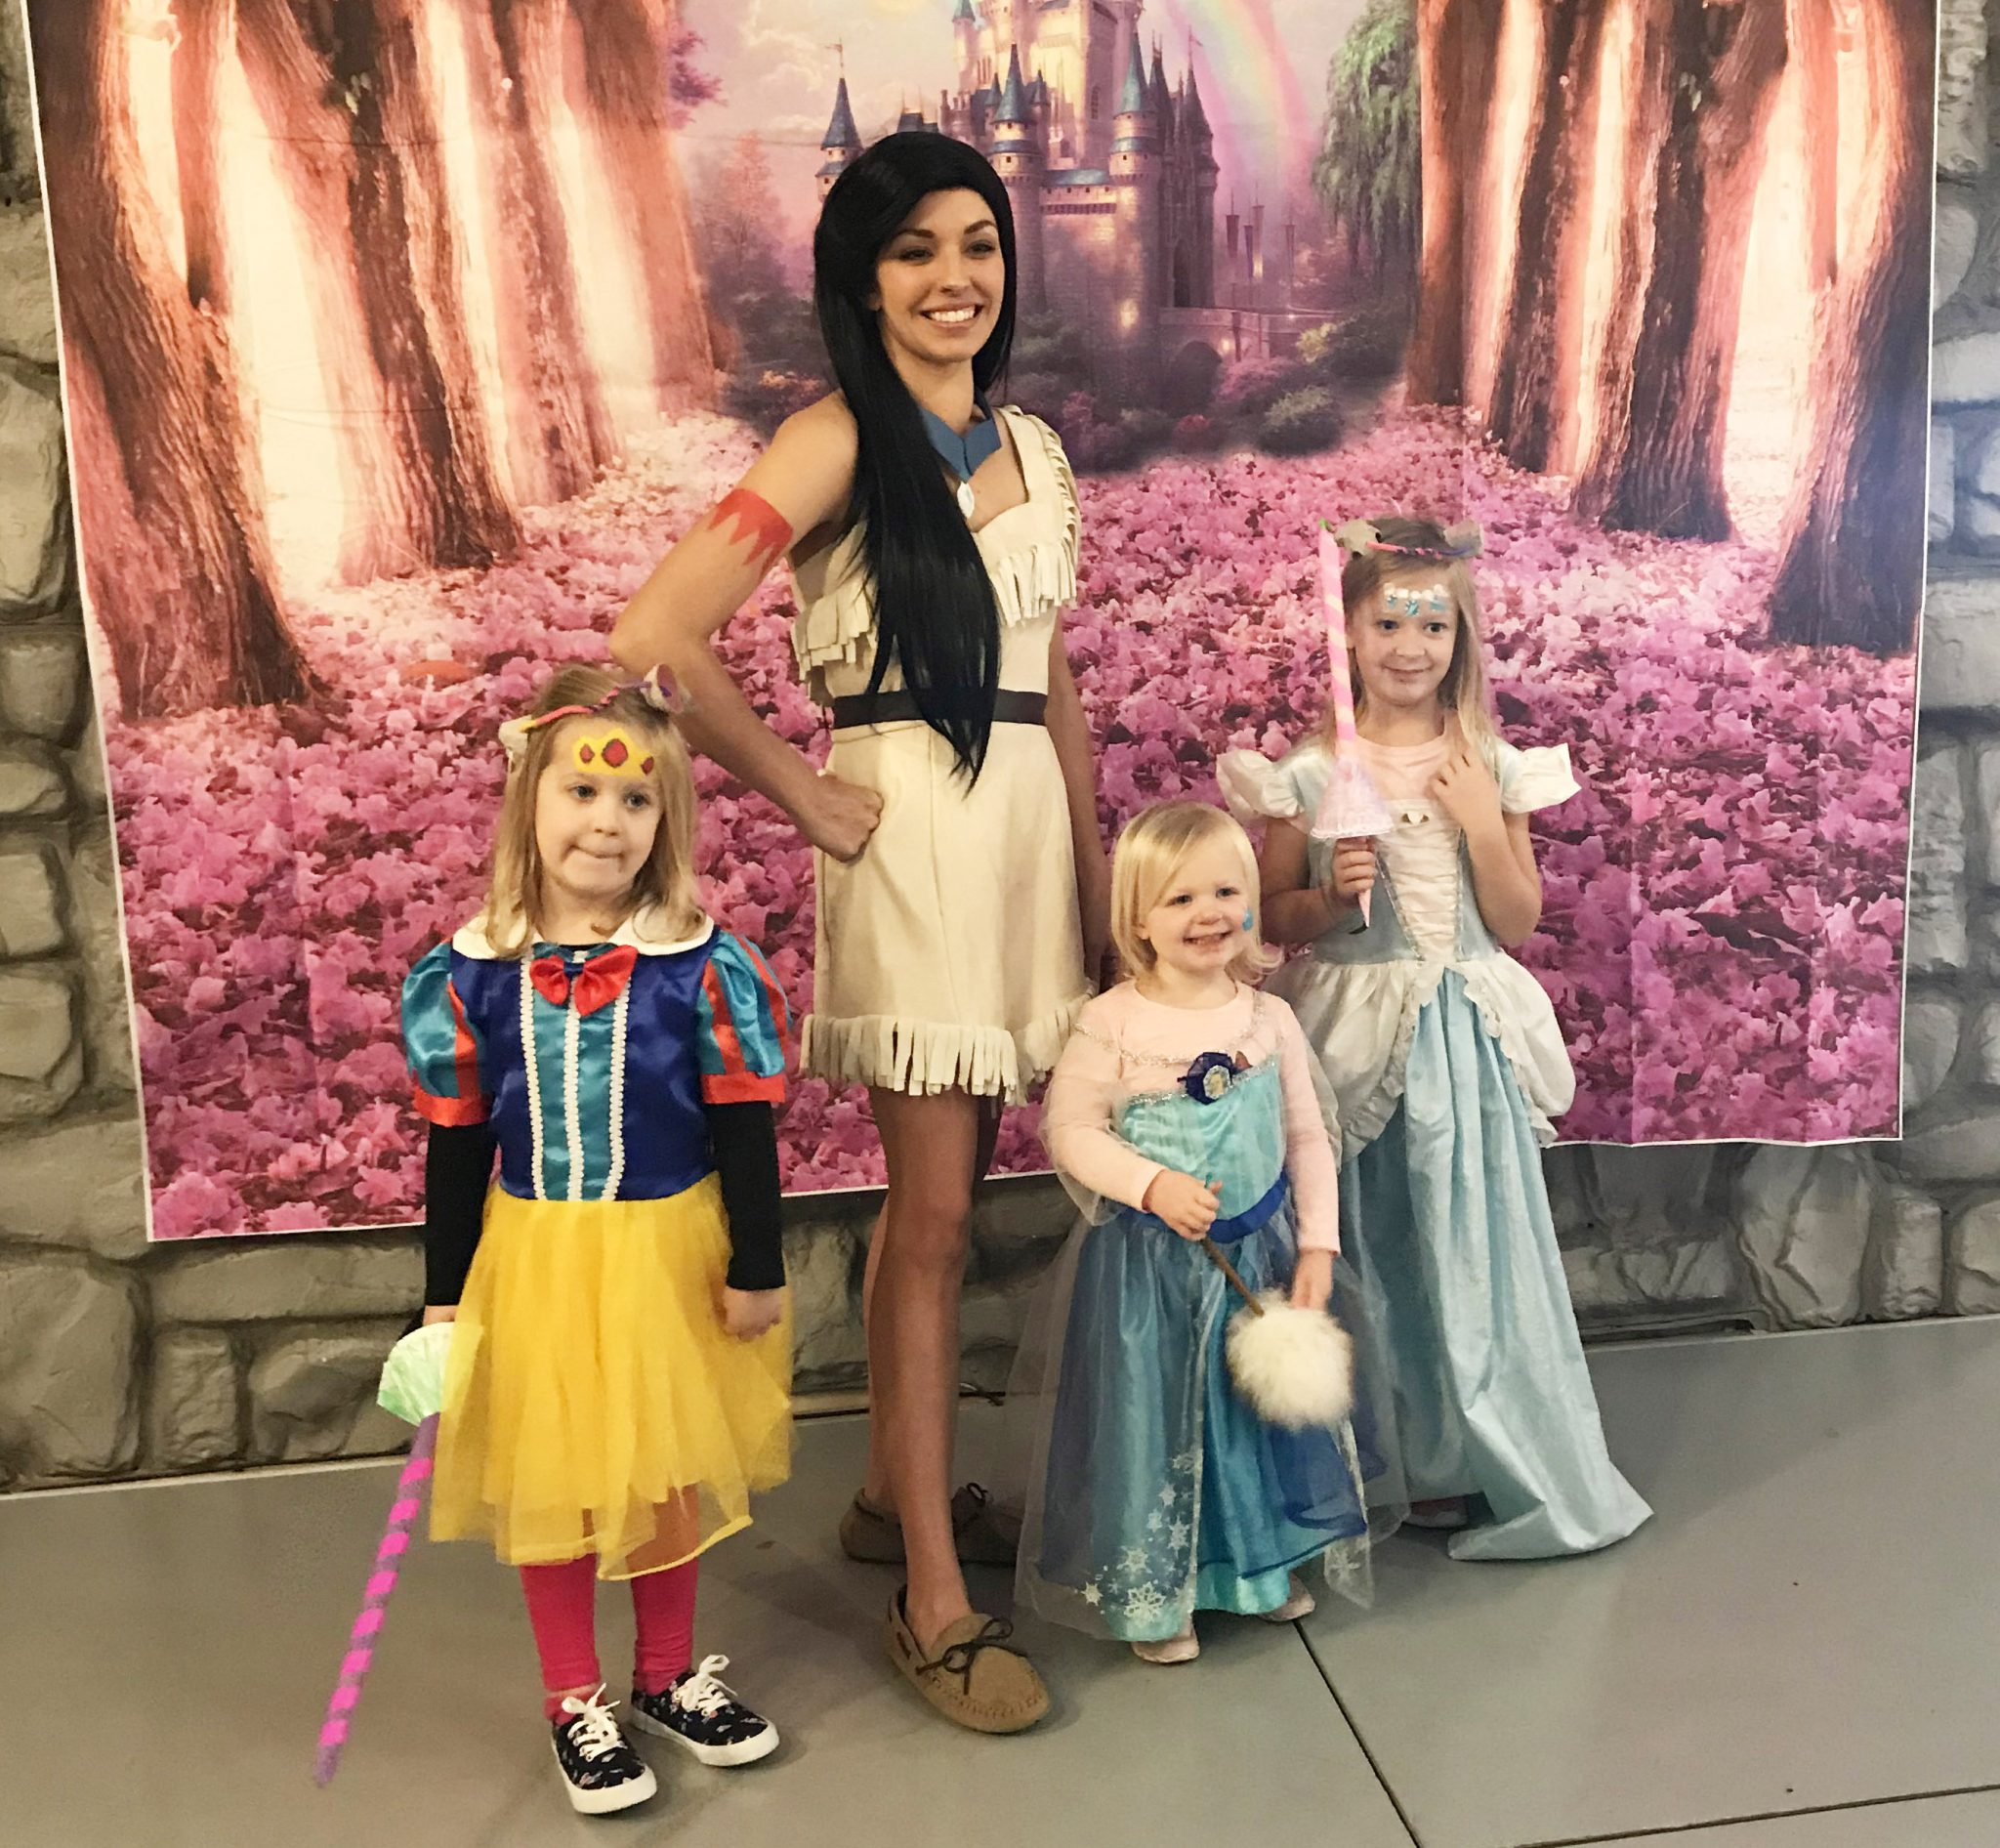 Local princesses invited to join Disney princesses at The Woodlands Children's Museum's Princess Day celebration, Friday Nov. 22